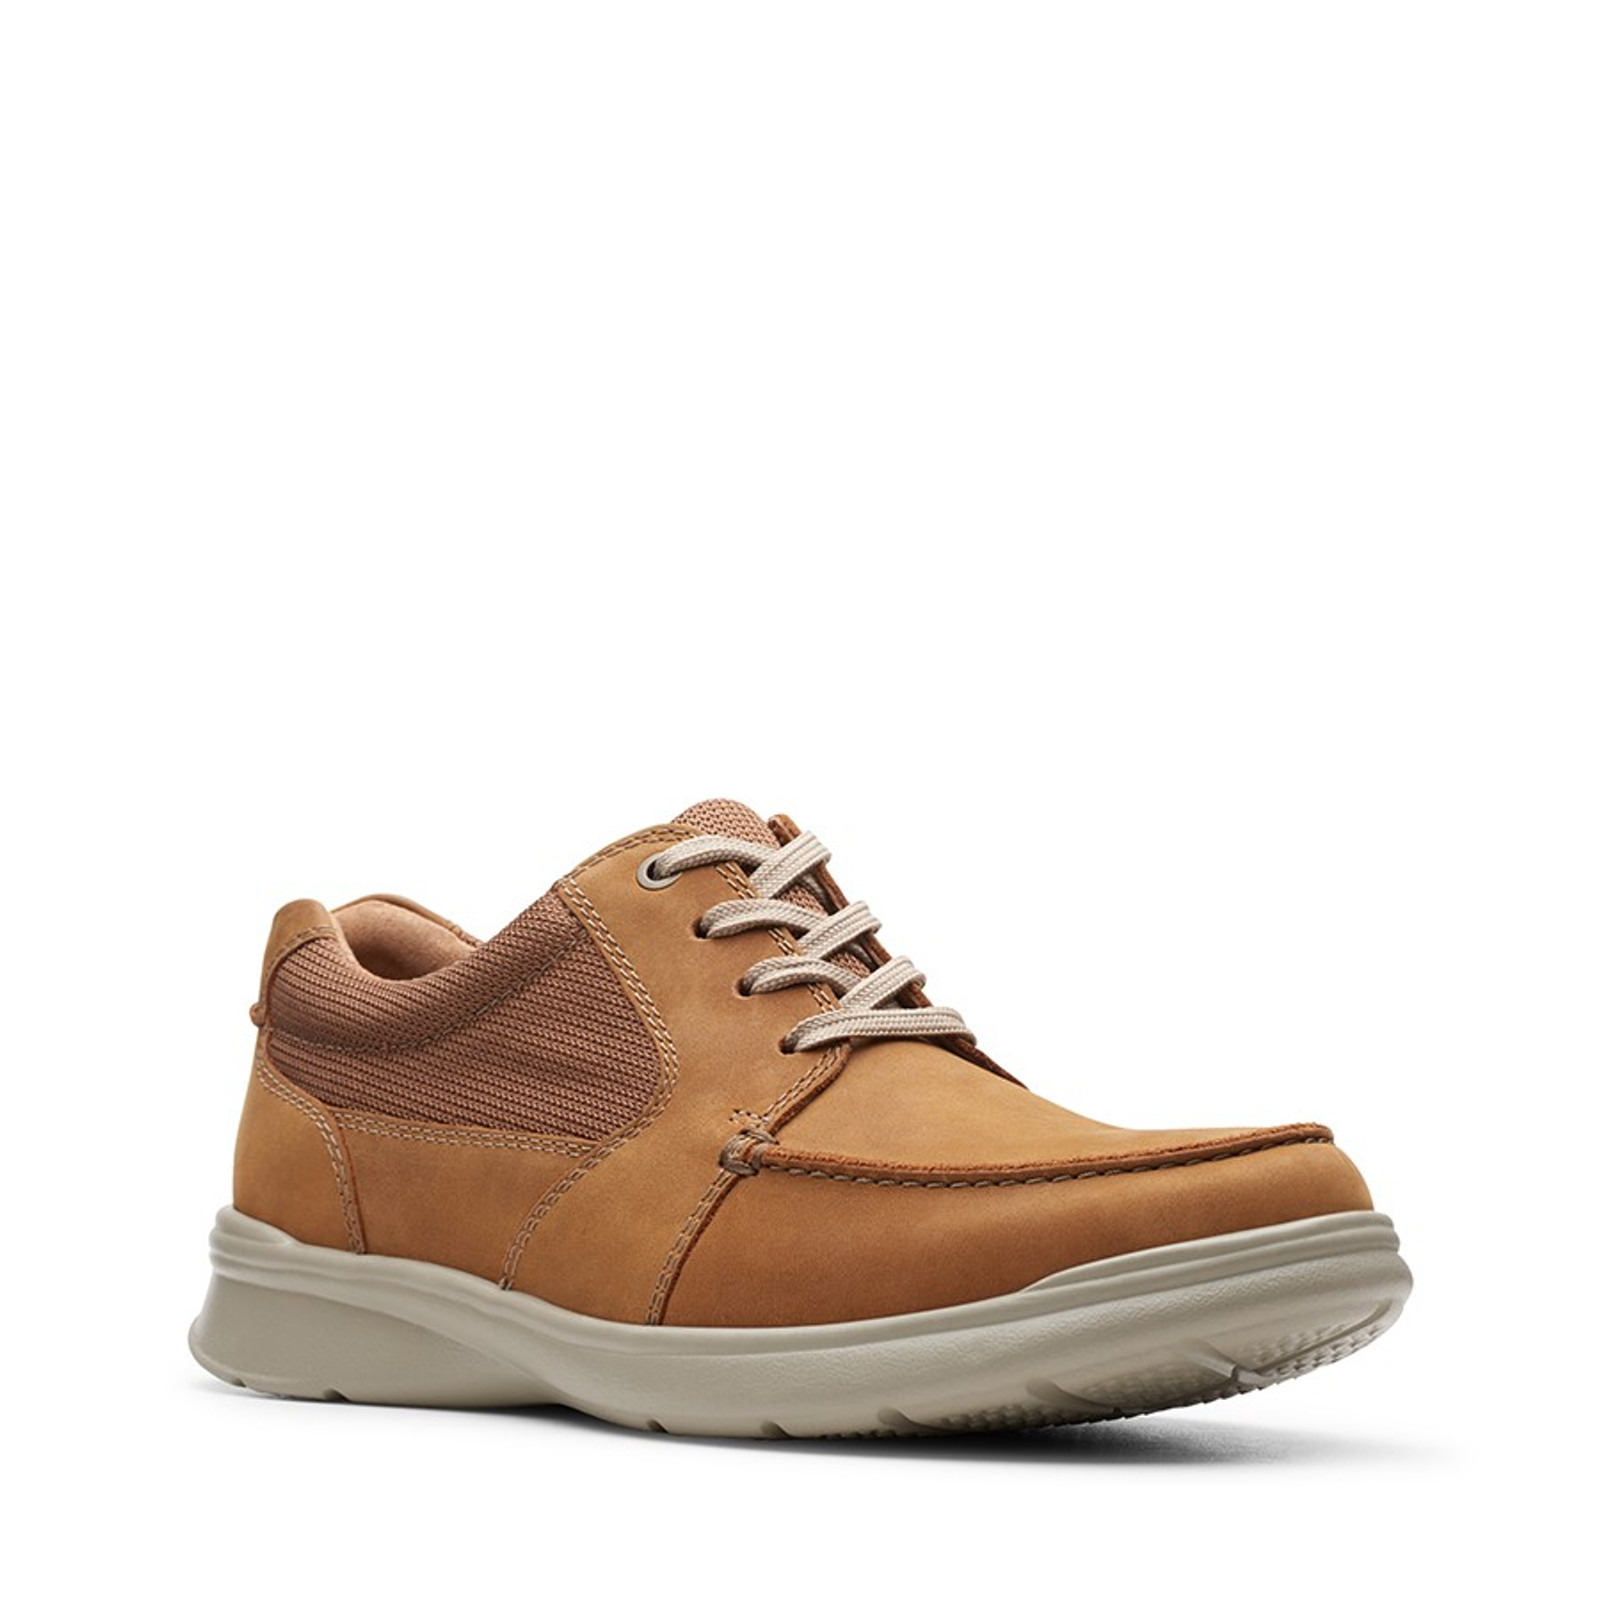 Shoe Warehouse Mens COTRELL LANE Tan Combo Leather